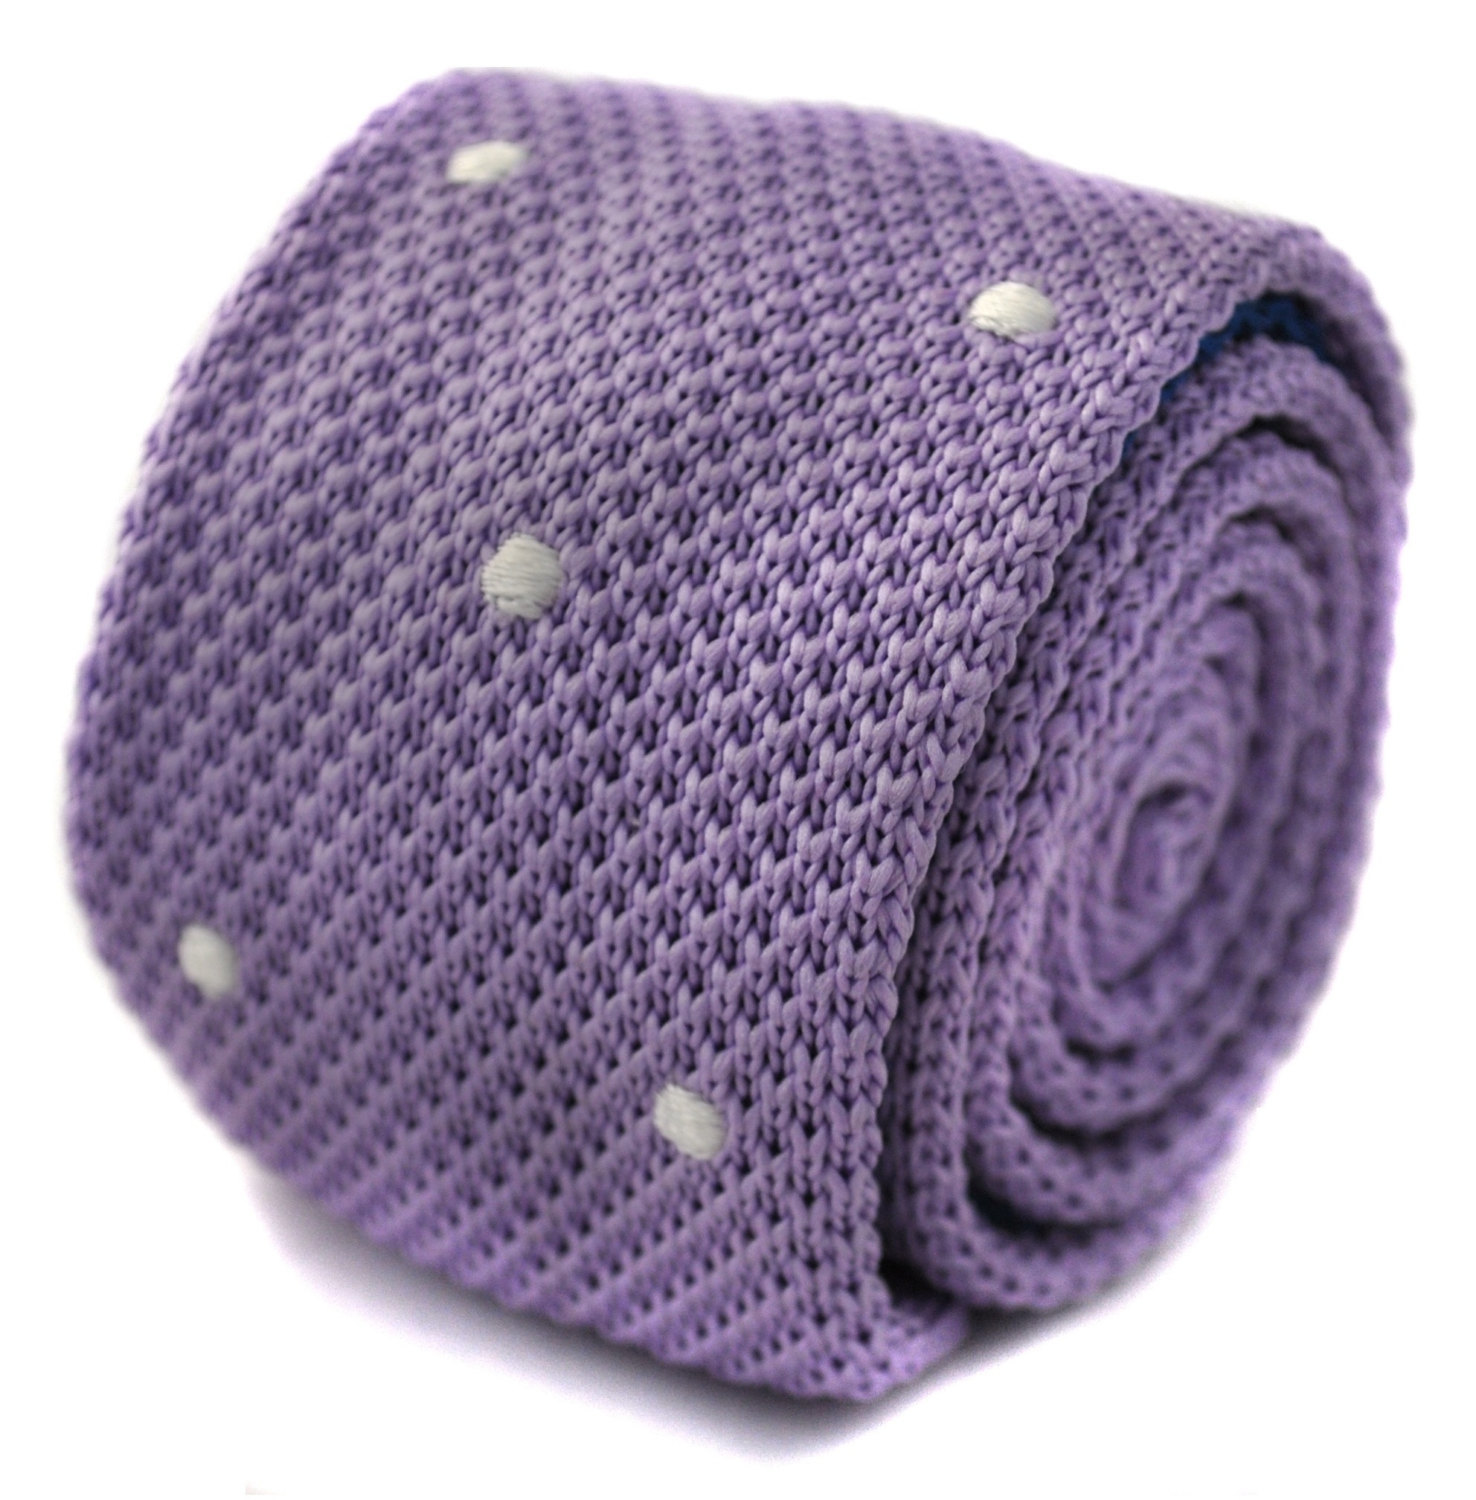 Lilac purple spotty knitted skinny tie by Frederick Thomas FT1160